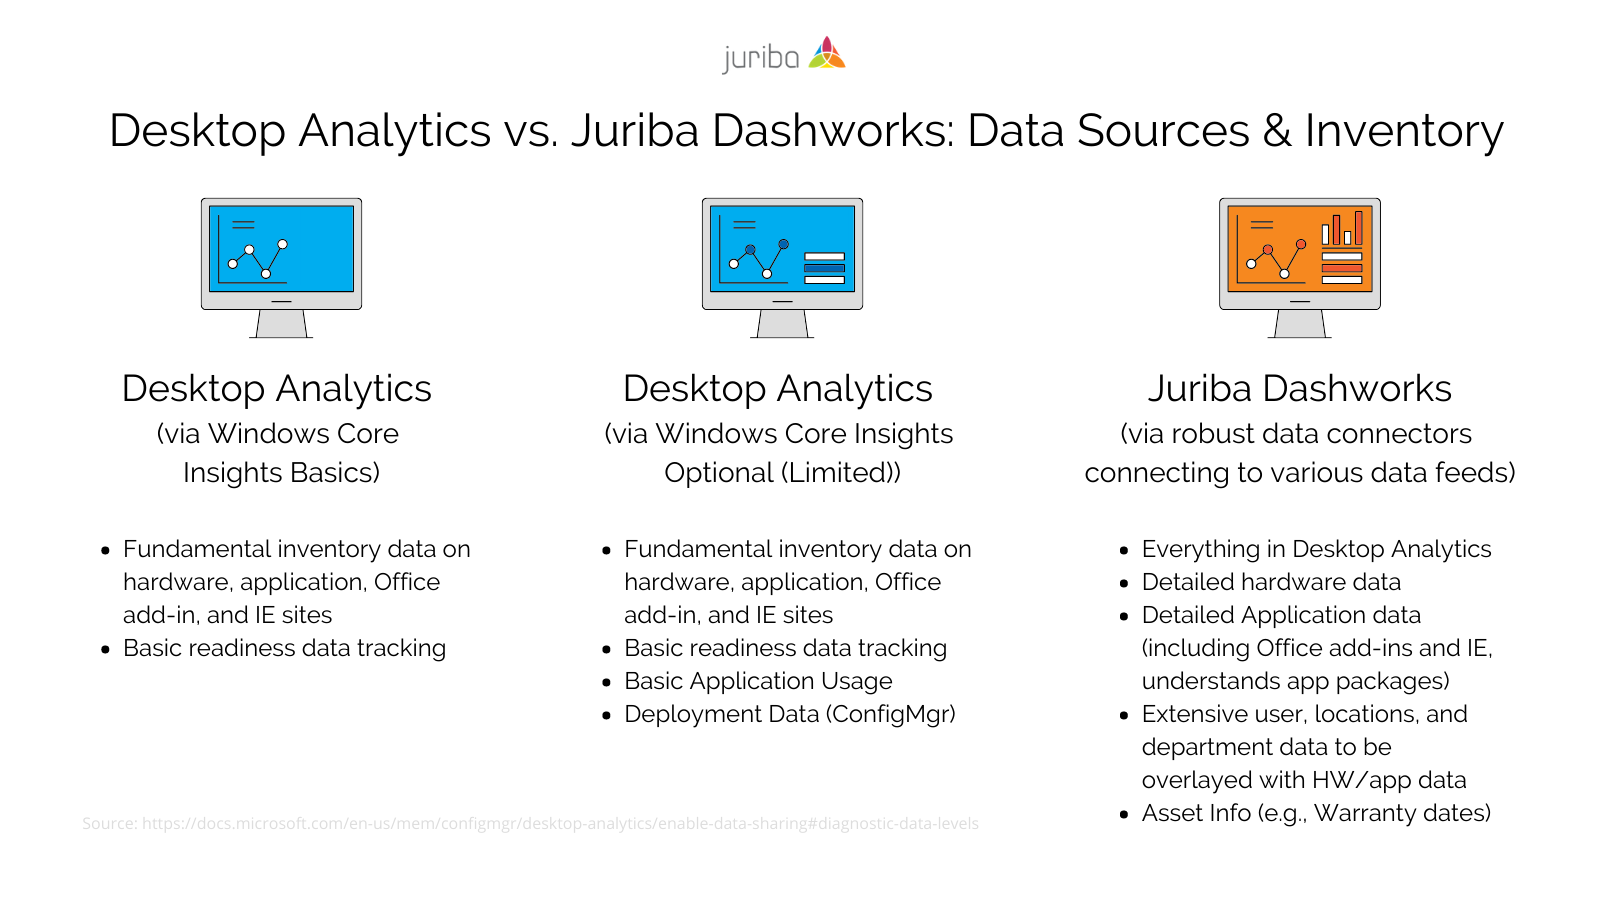 Desktop Analytics vs. Juriba Dashworks - Data Sources and Inventory